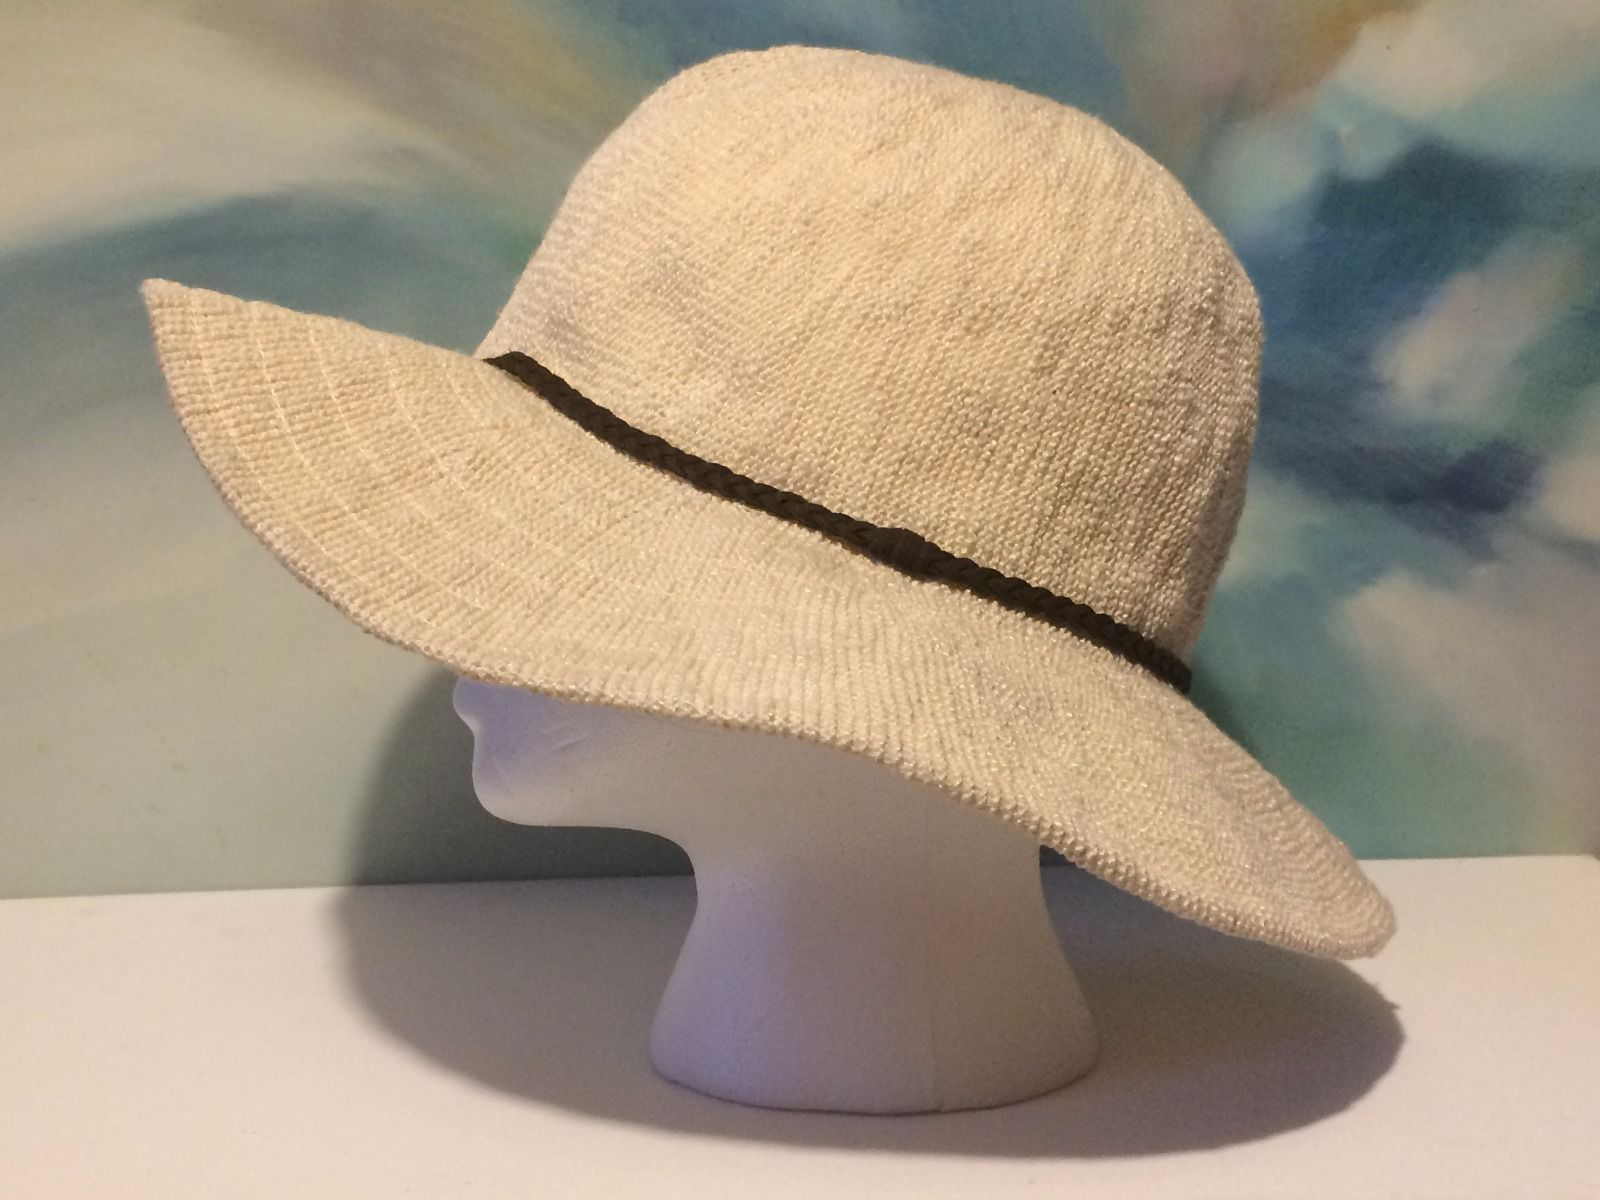 facf75cc13123 Forever 21 Women hat NWT Floppy wide brim and 50 similar items